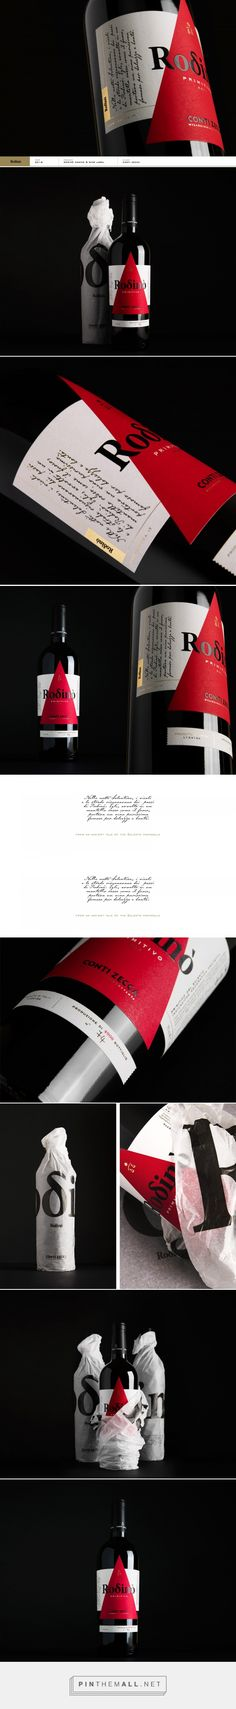 Wine labels are important sources of information for consumers, as they indicate the type and . While it is not necessary for a wine to be bottled i. Food Packaging Design, Beverage Packaging, Coffee Packaging, Bottle Packaging, Packaging Design Inspiration, Chocolate Packaging, Wine Label Design, Bottle Design, Wine Bottle Labels